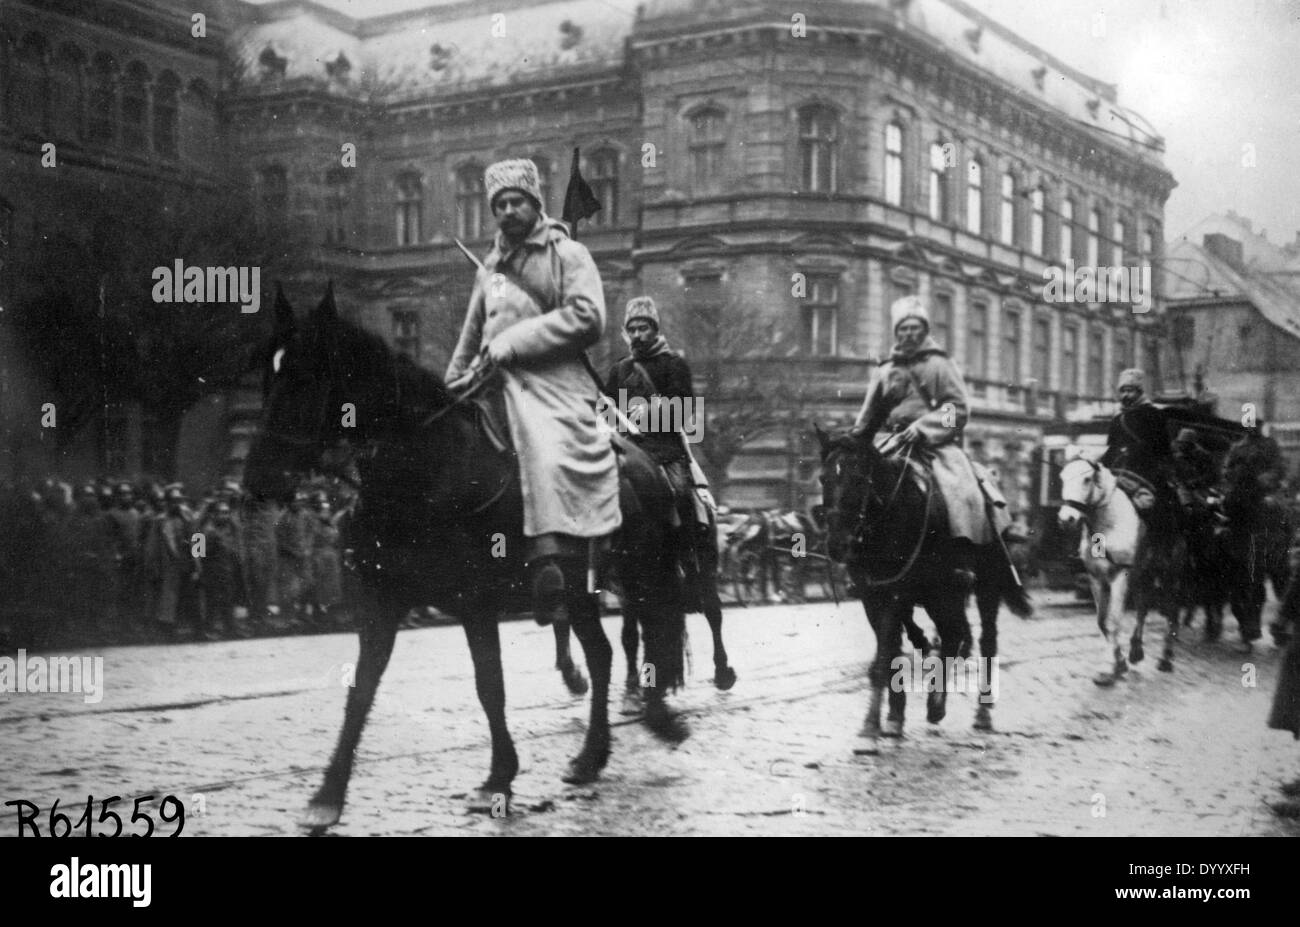 Entry of Russian cavalry in Lviv, 1914 - Stock Image